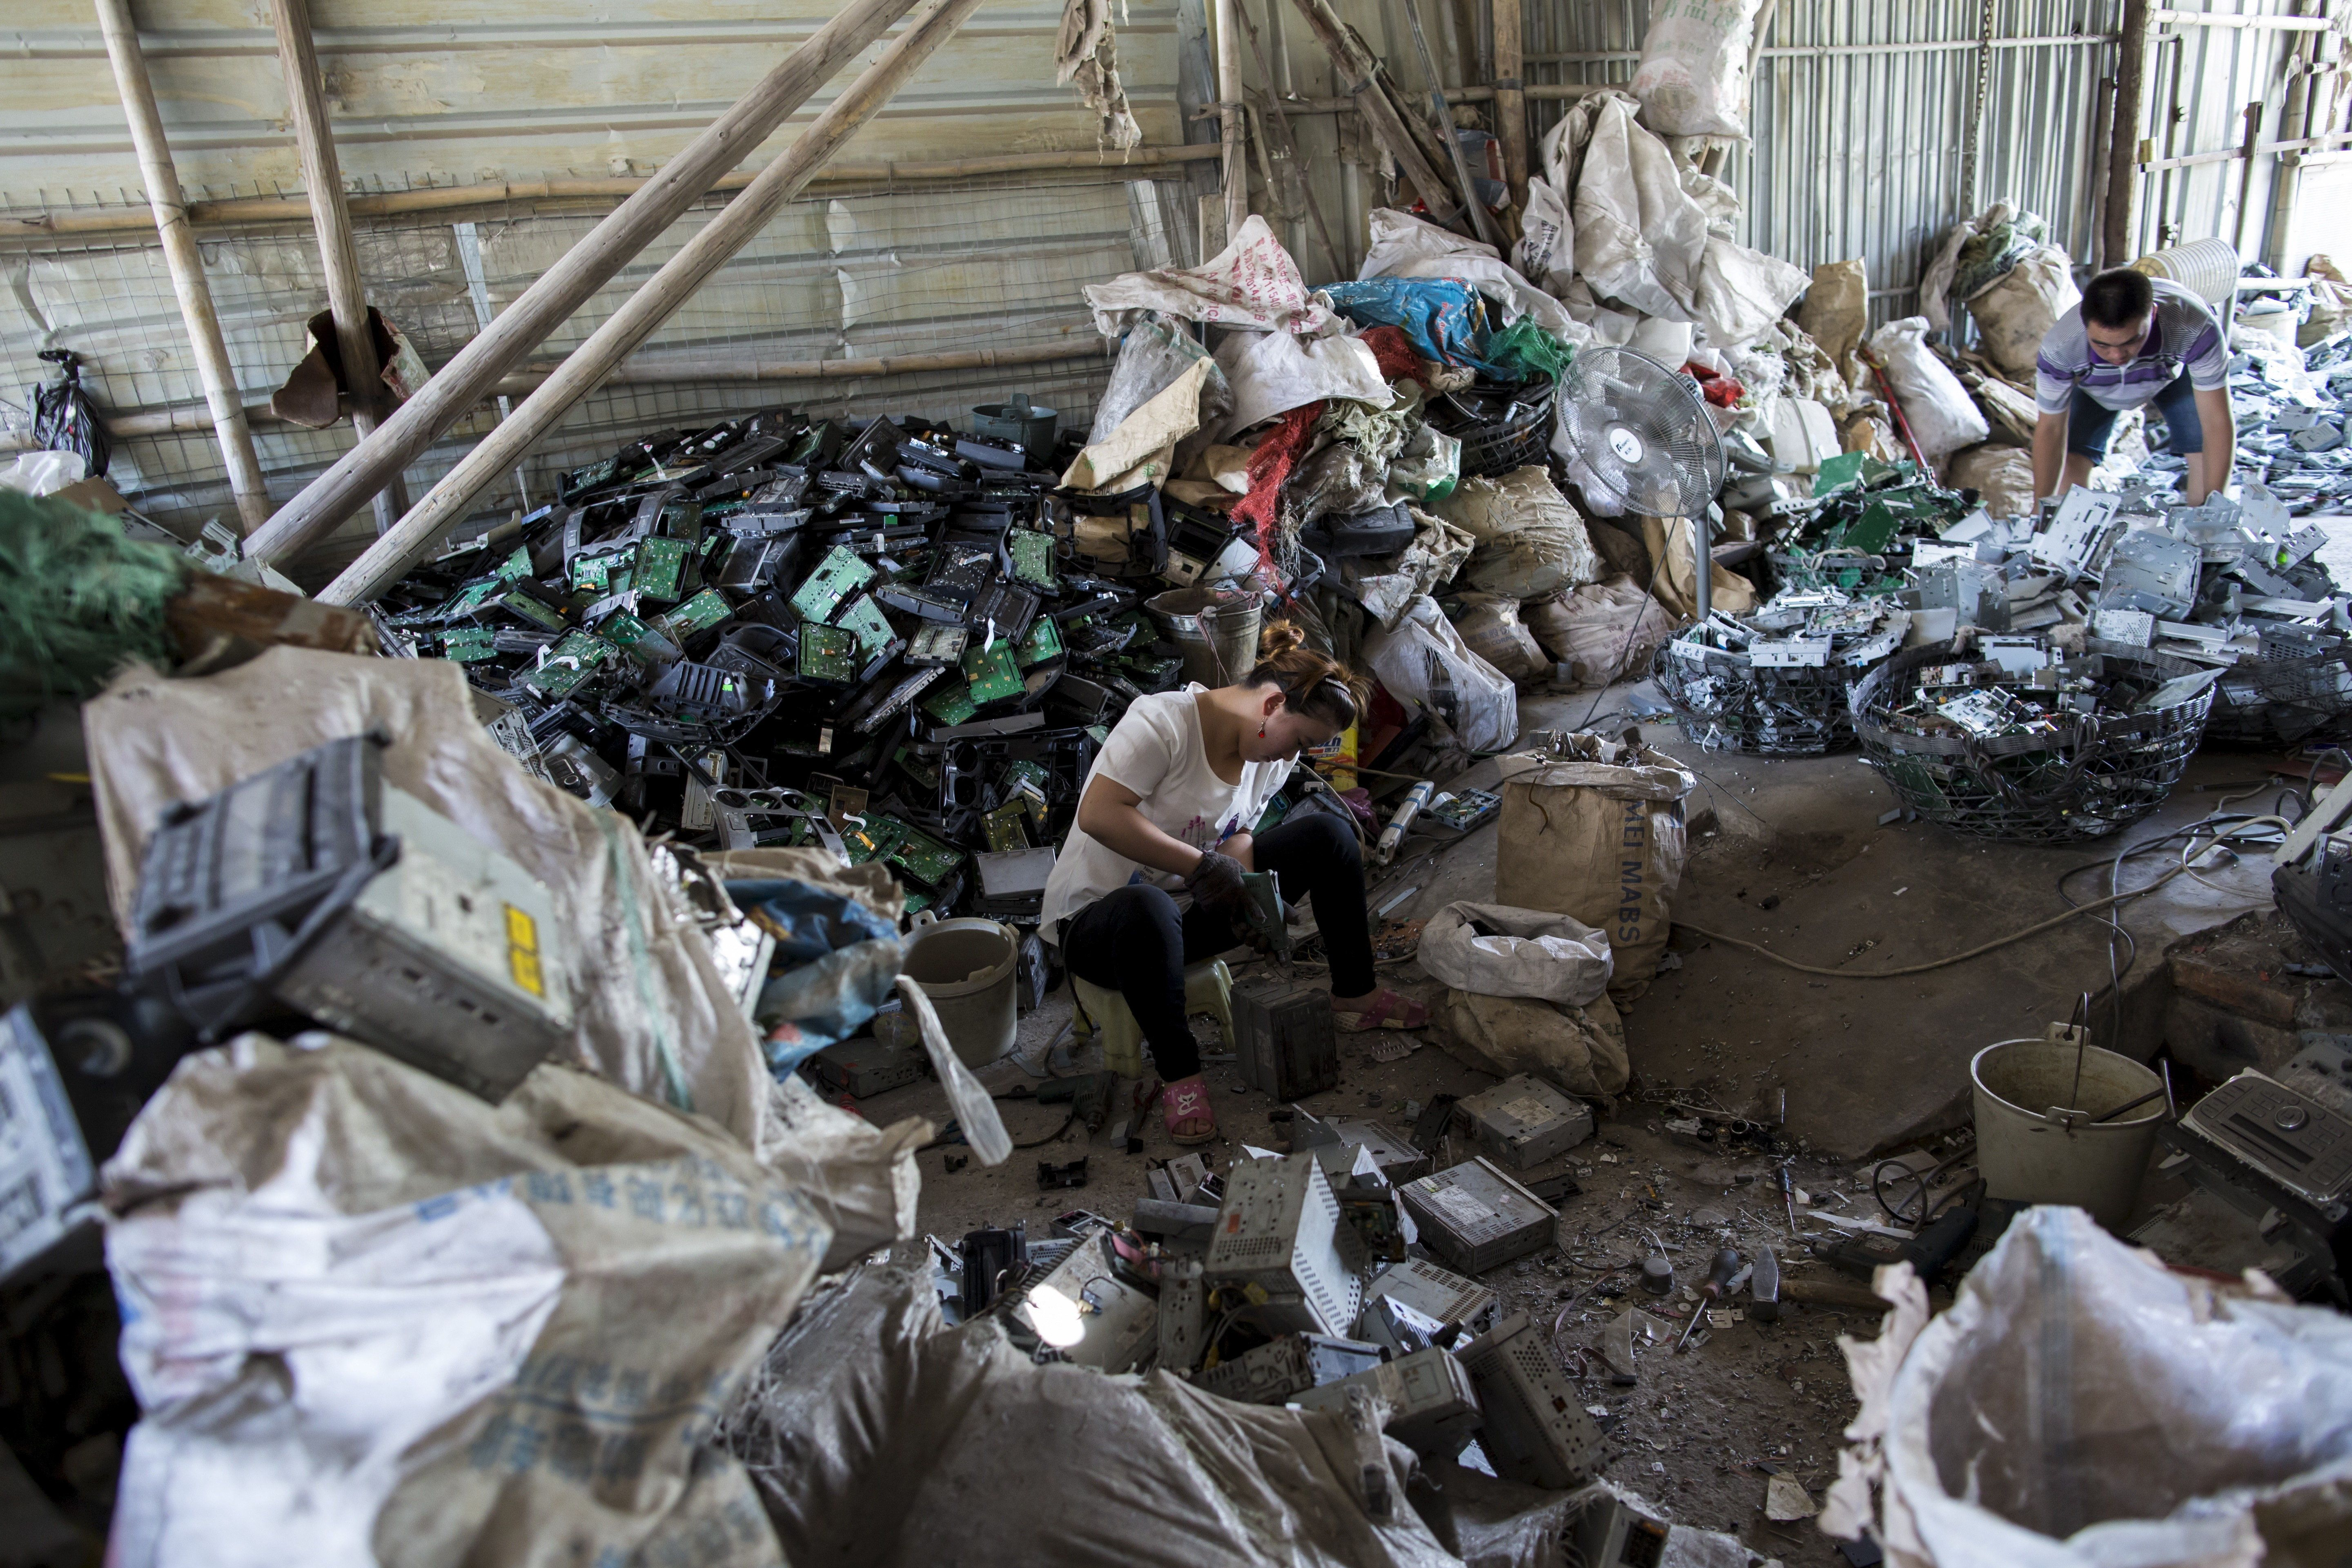 China has introduced a ban on importing plastic waste which could lead to mountains of waste building...